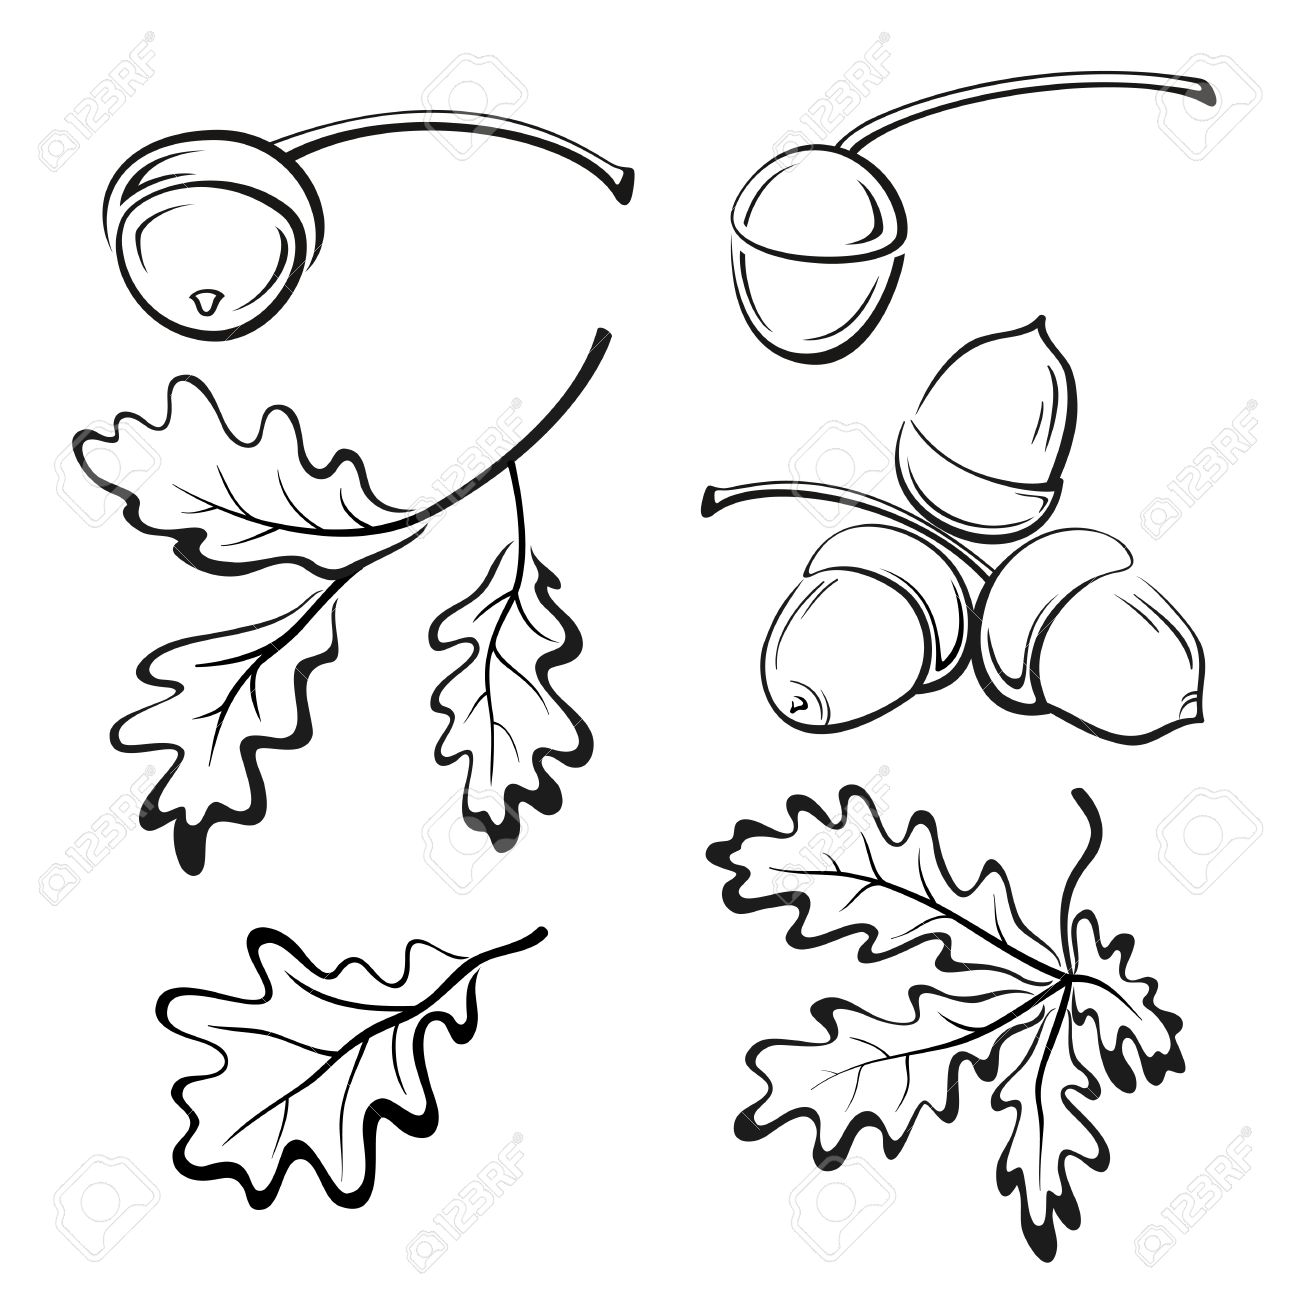 Set Oak Branches with Leaves and Acorns, Black Contour Pictograms Isolated on White Background. Vector - 47014471